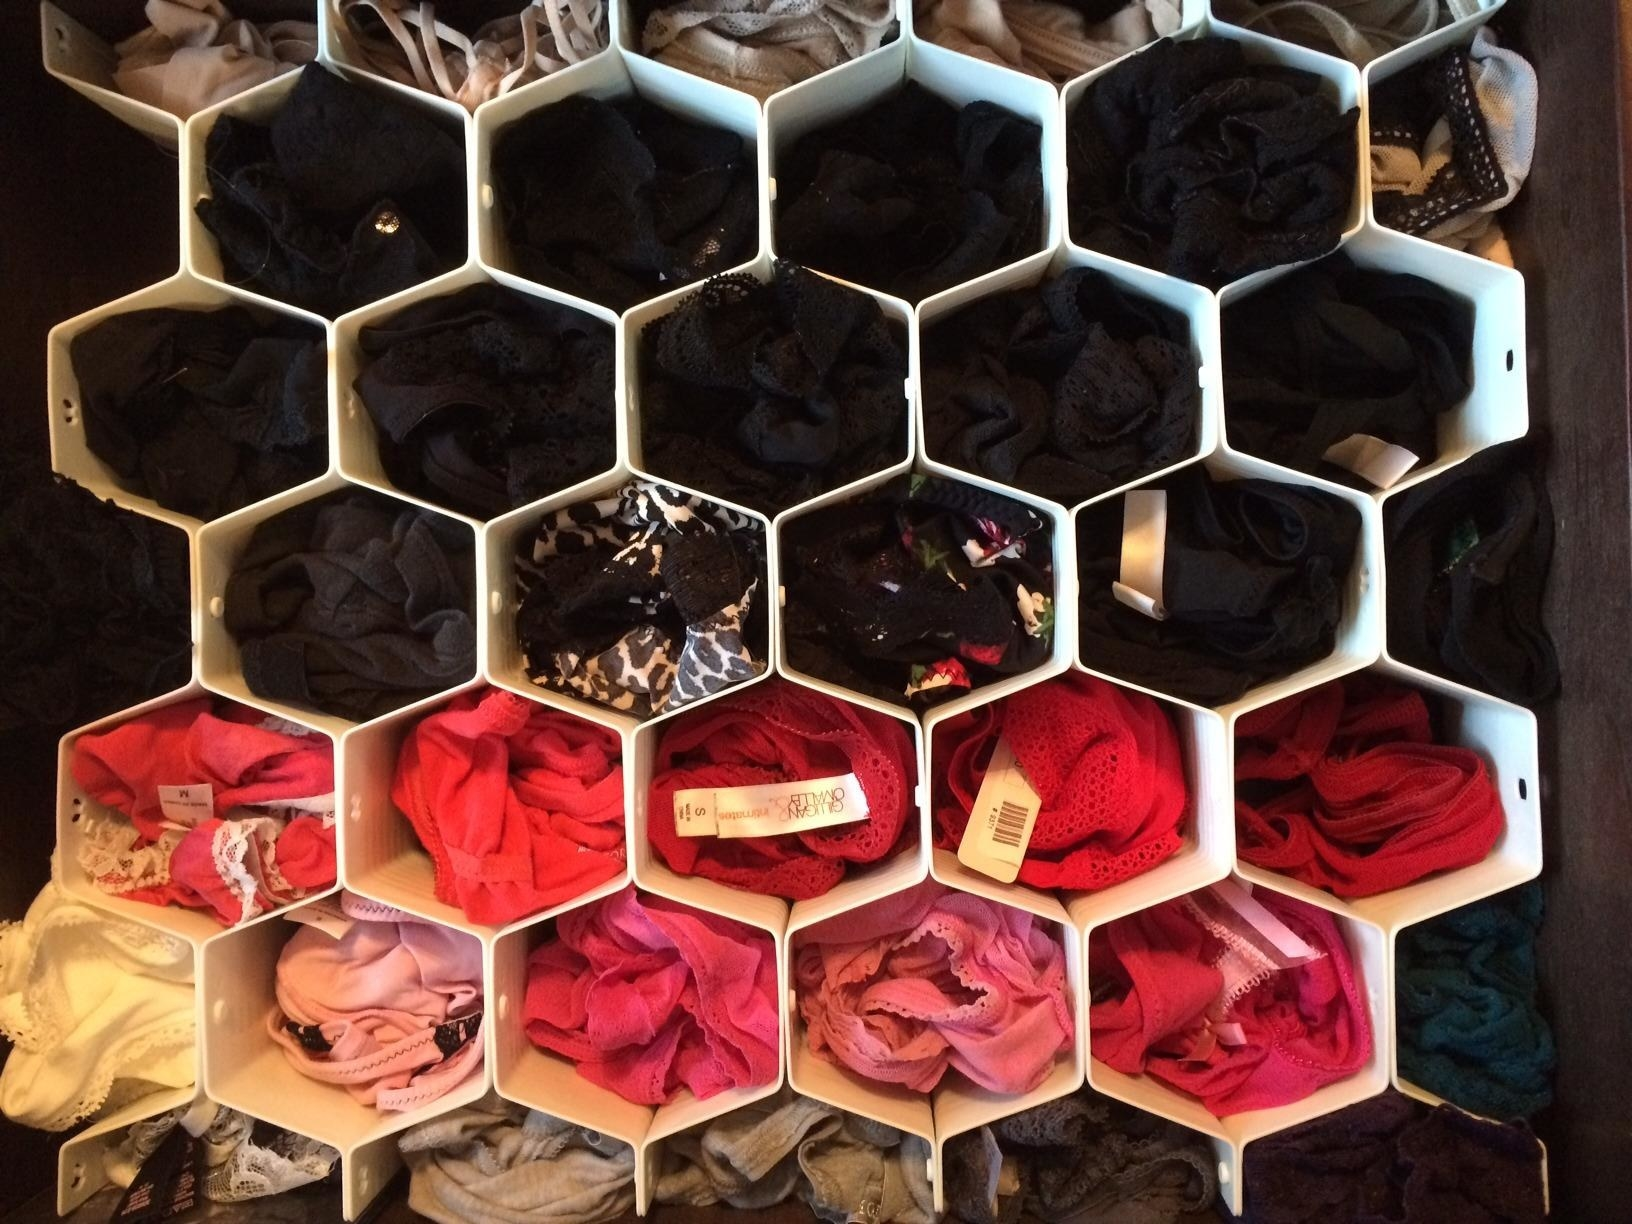 reviewer's underwear drawer with small honey comb-shaped dividers separating each pair